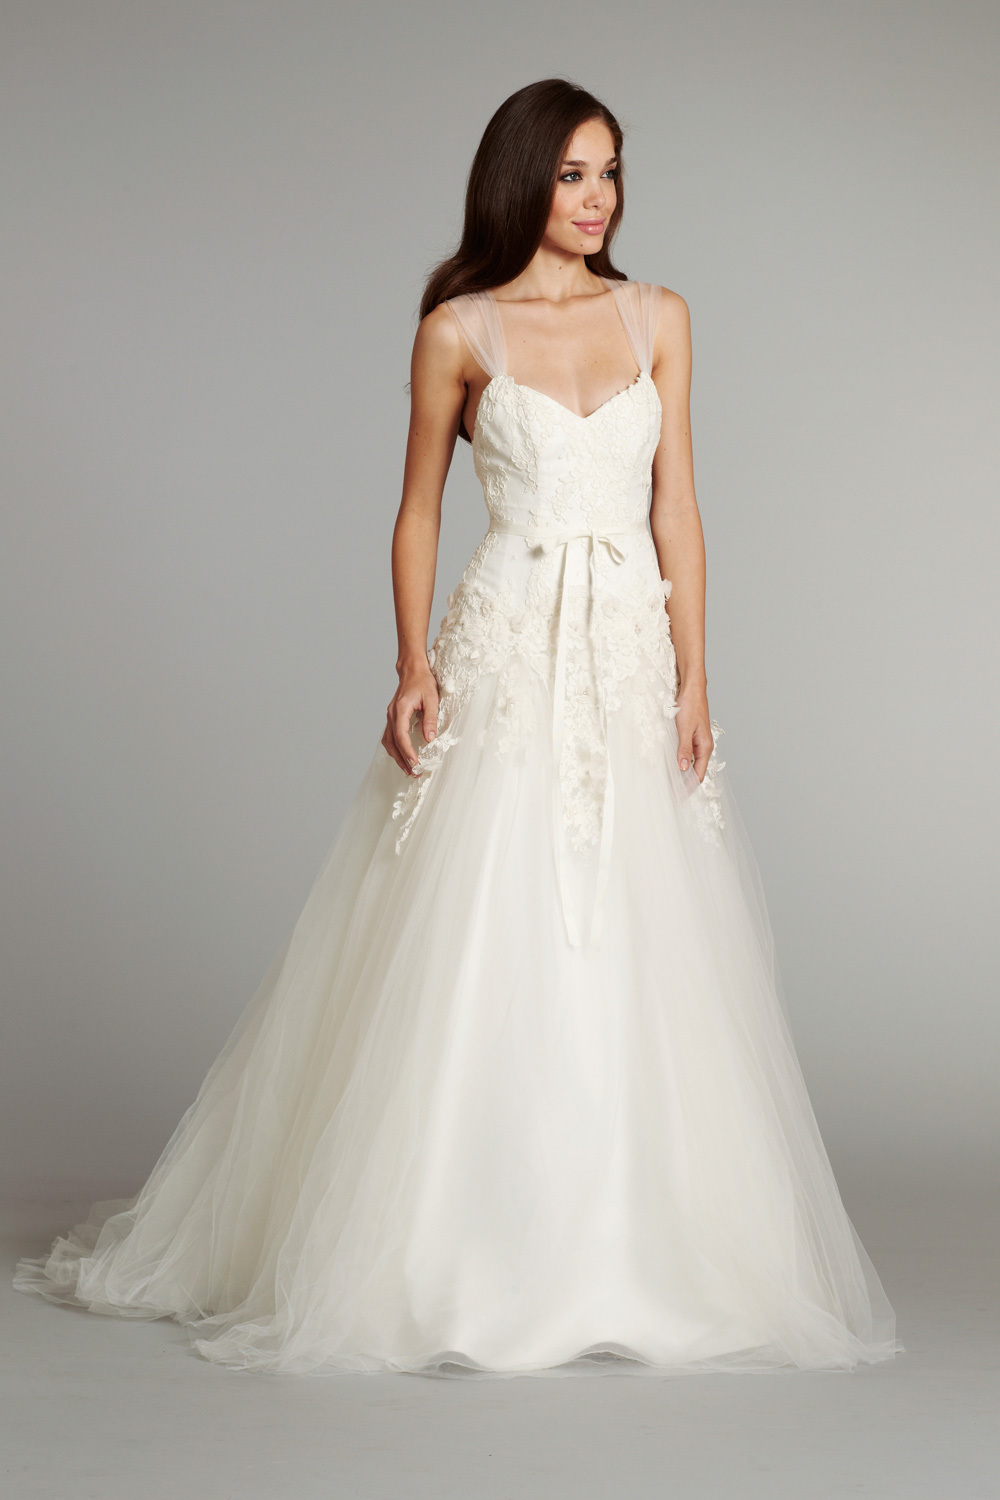 New-bridal-gowns-fall-2012-wedding-dress-hayley-paige-for-jlm-couture-seraphina.full